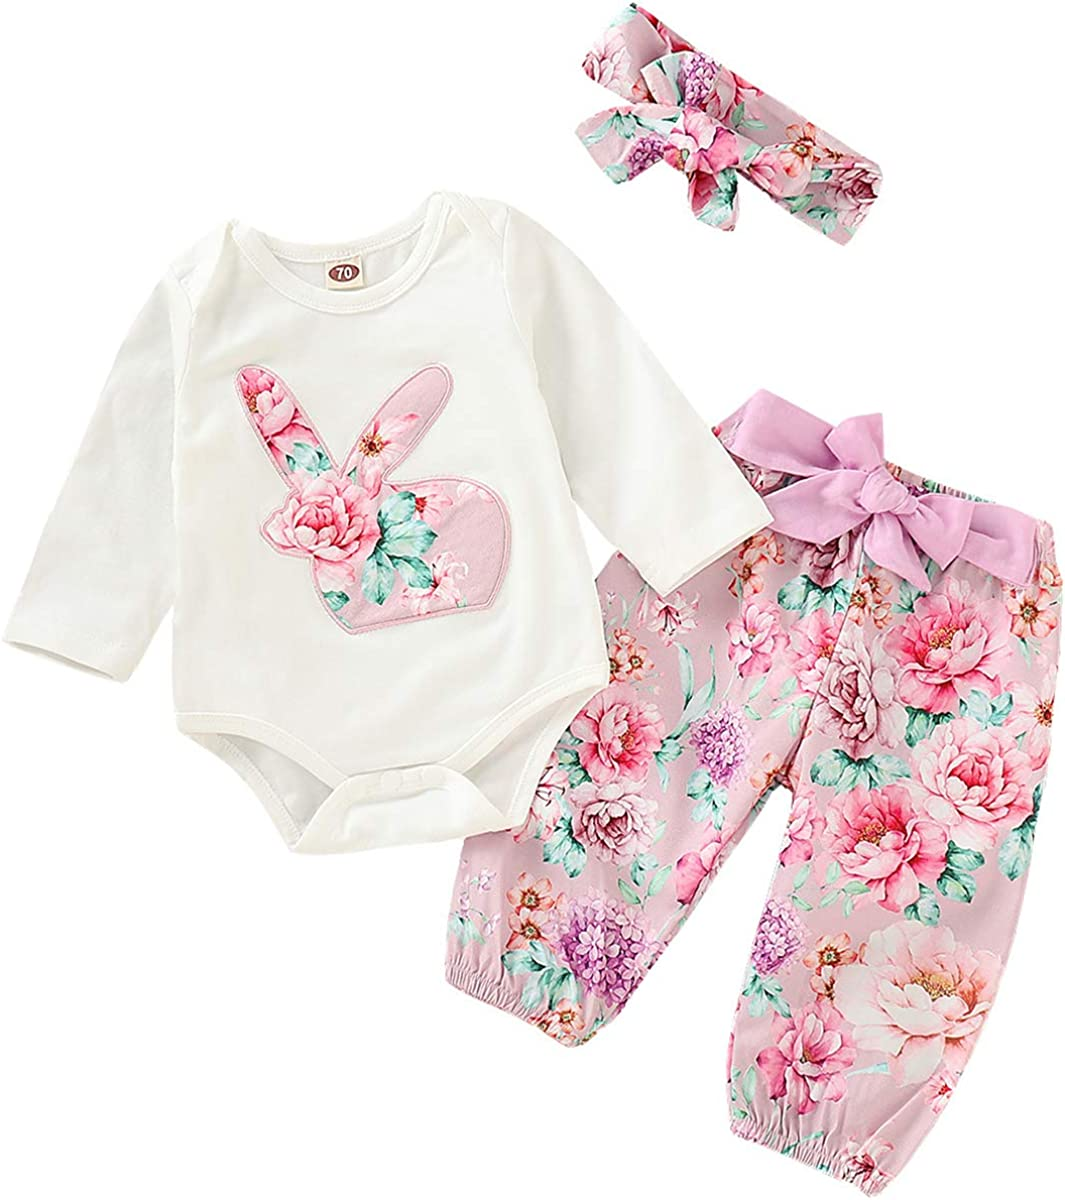 3PC Infant Baby Easter Day Rabbit Print Jumpsuit Romper+Pants+Headband Outfits